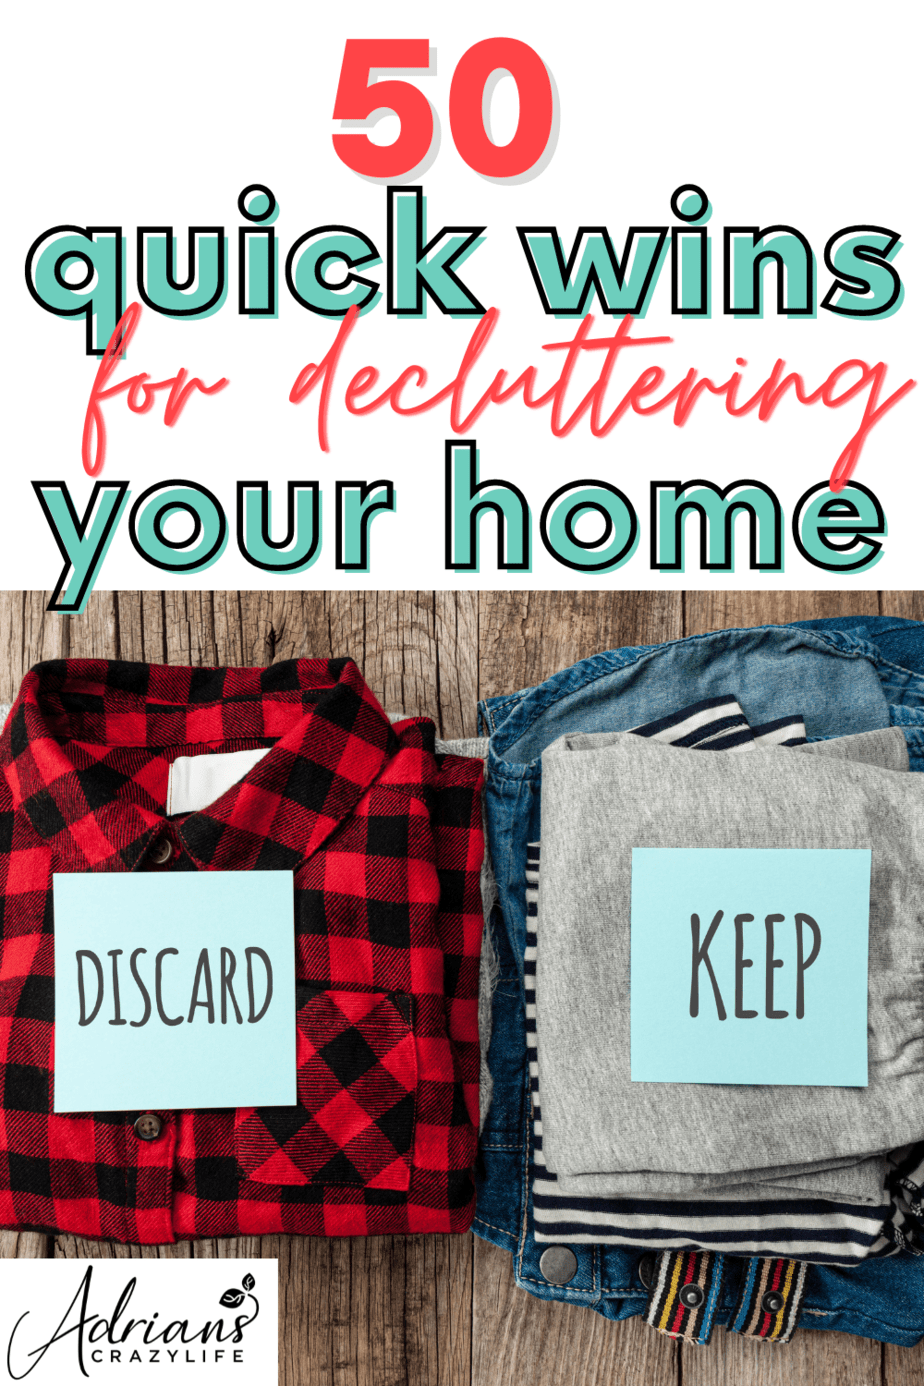 Quick Wins for Decluttering Your Home